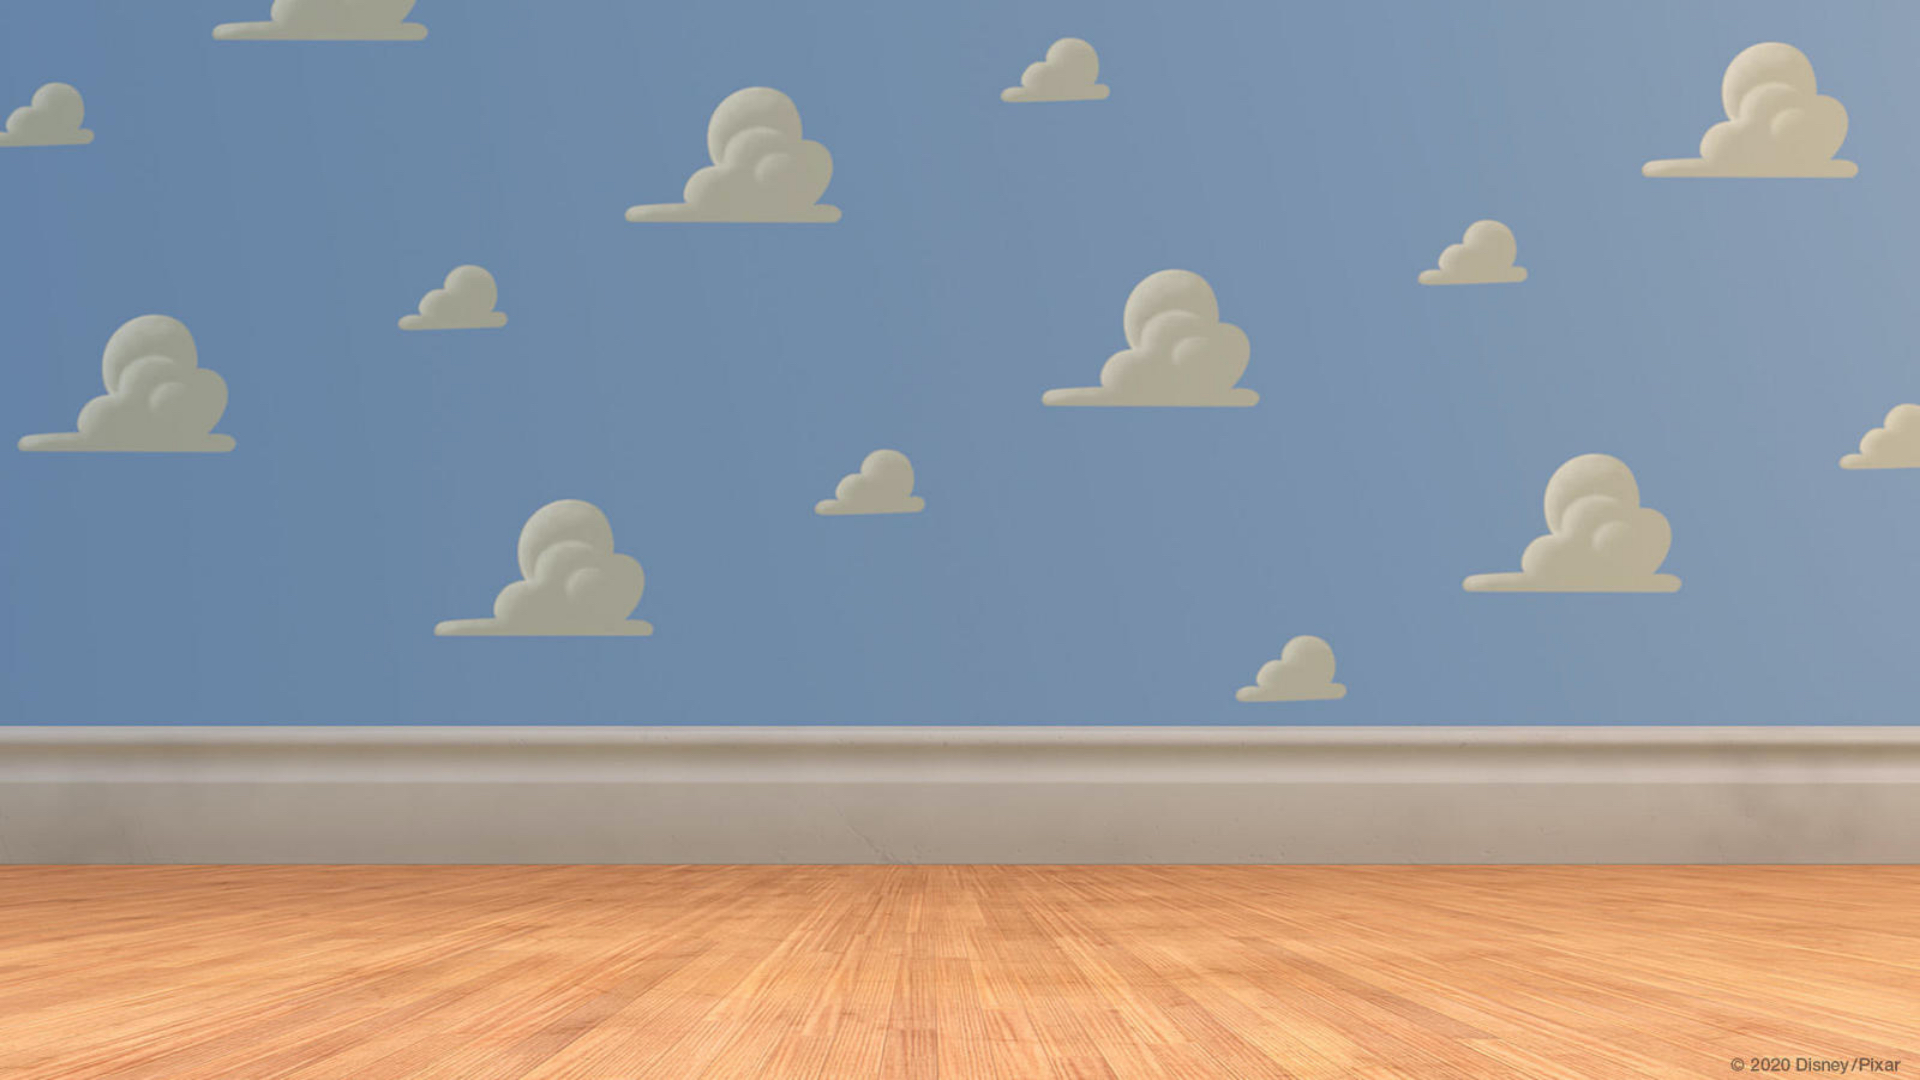 Pixar - Toy Story Background for Teams or Zoom